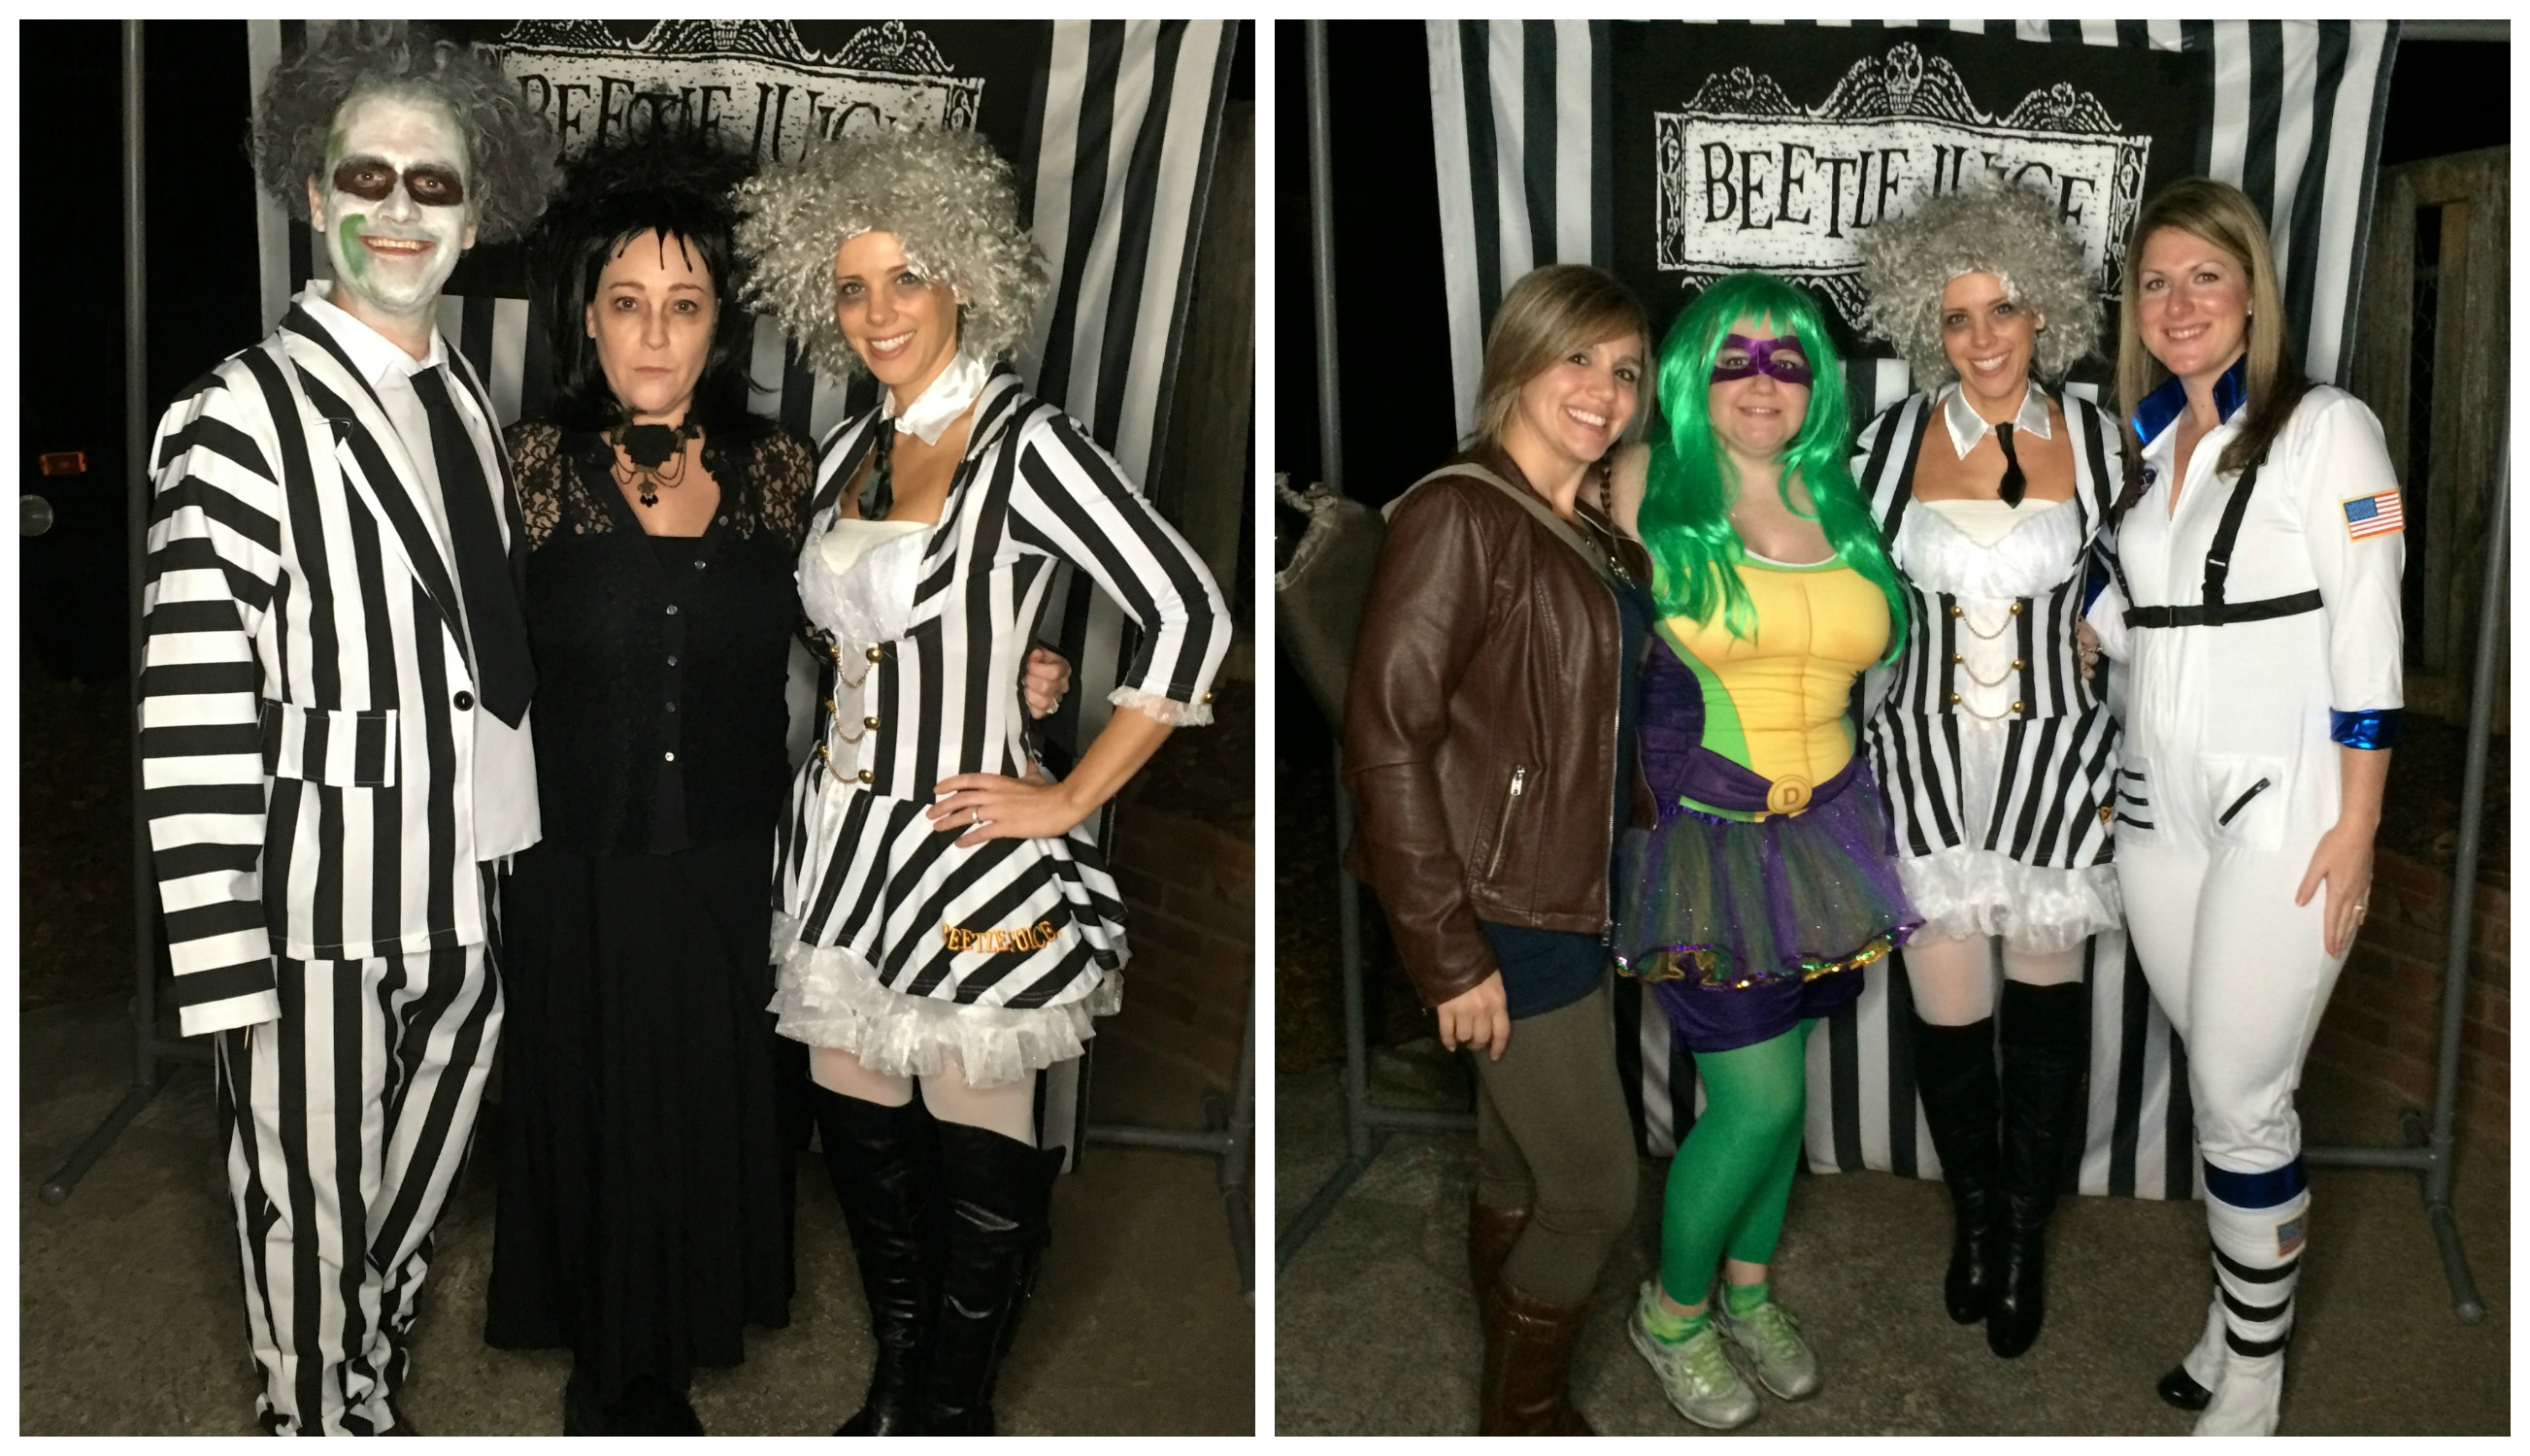 Beetlejuice Halloween Party - Guest Collage 1